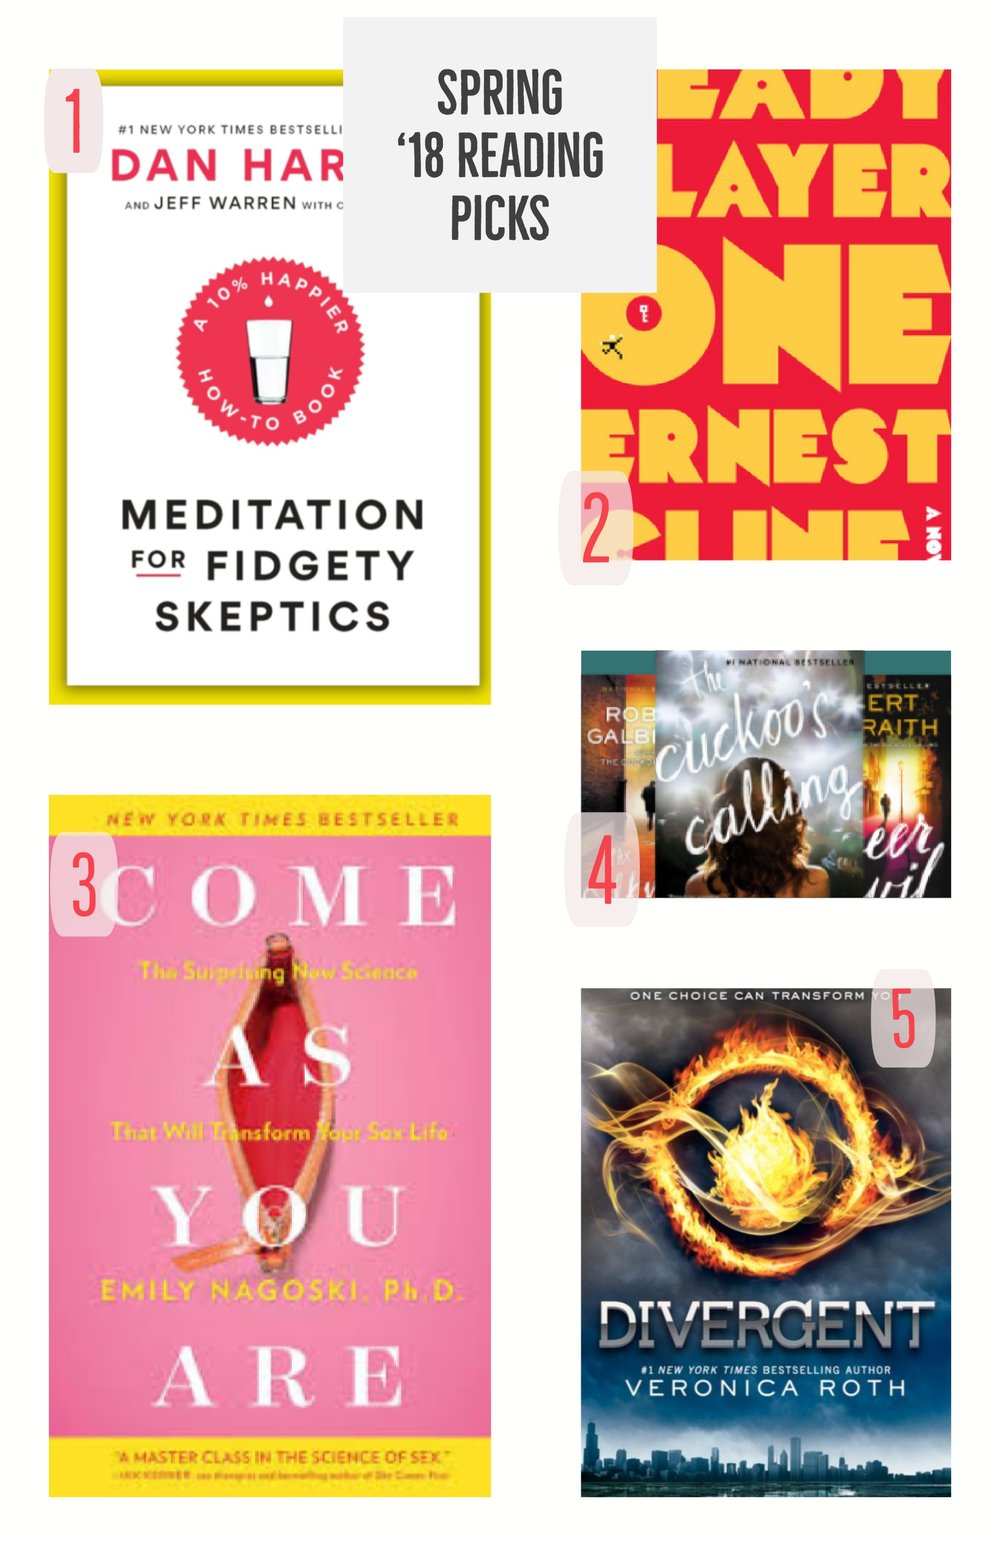 1. Meditation for Fidgety Skeptics by Dan Harris                           2. Ready Player One by Ernest Cline 3. Come As You Are by Dr. Emily Nagoski                                     4. Cormoran Strike series by Robert Galbraith 5. Divergent by Veronica Roth